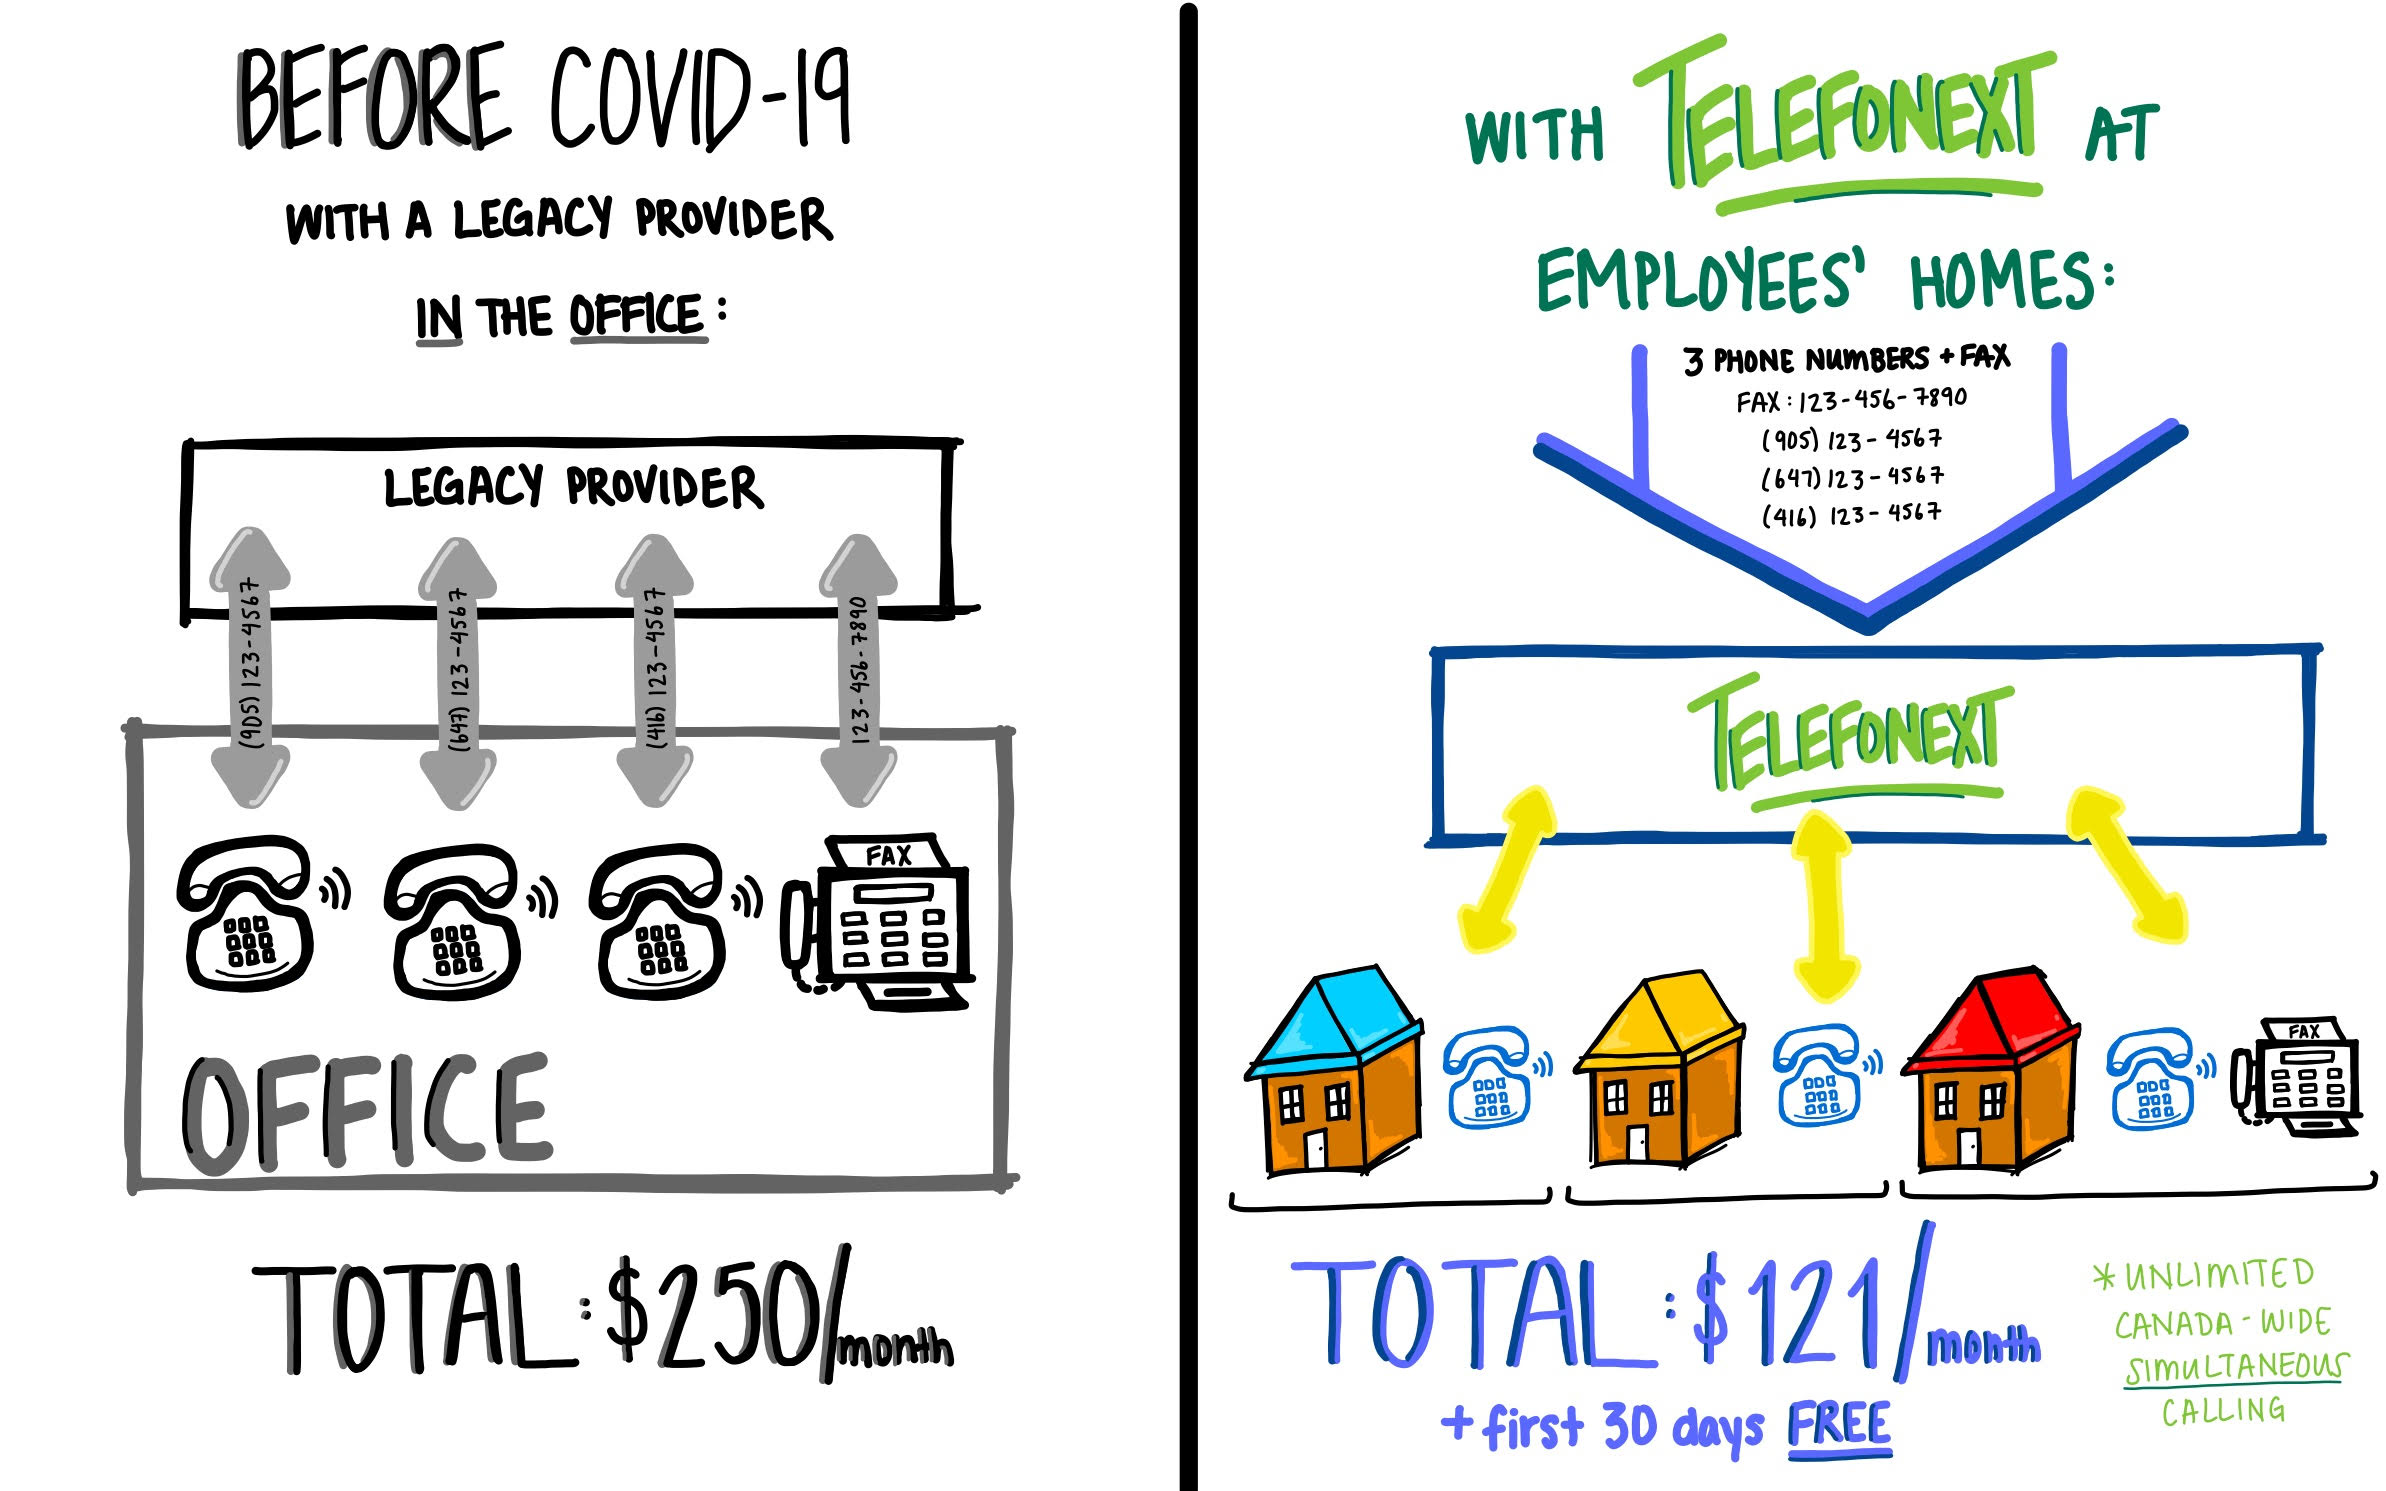 COVID response for phone system solution: three phone numbers, one fax and three extensions